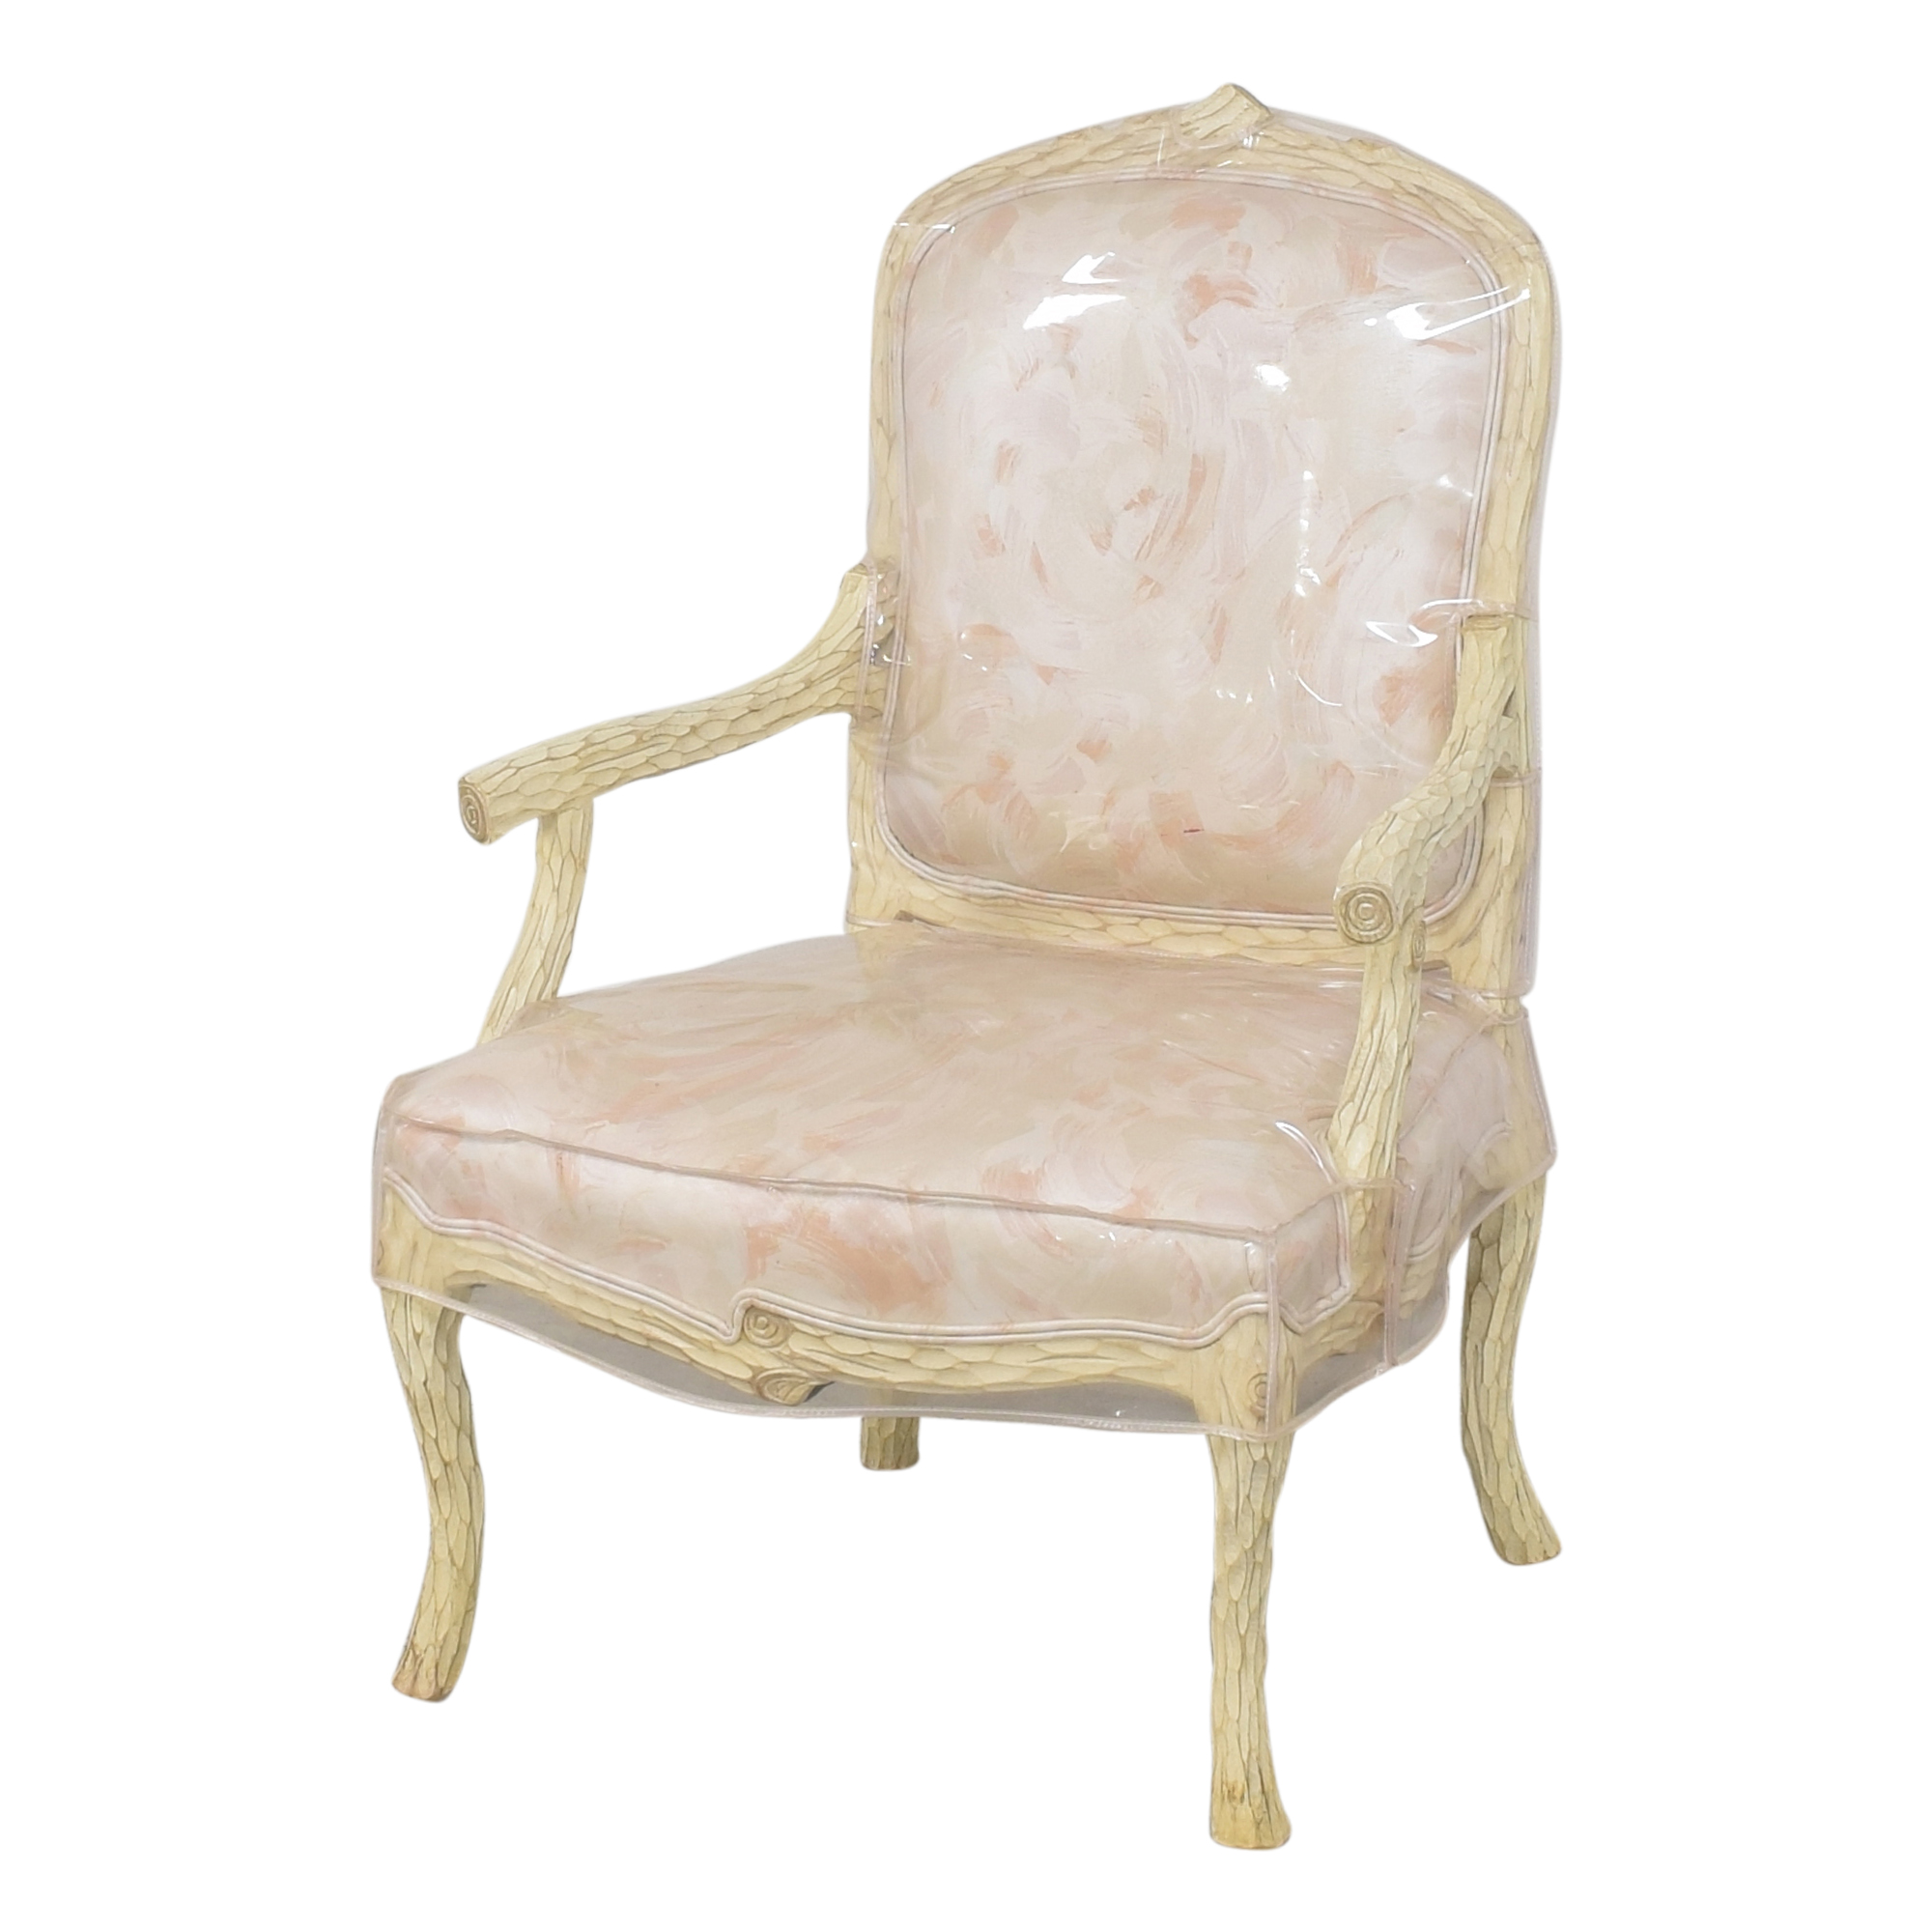 French Provincial-Style Arm Chair ct